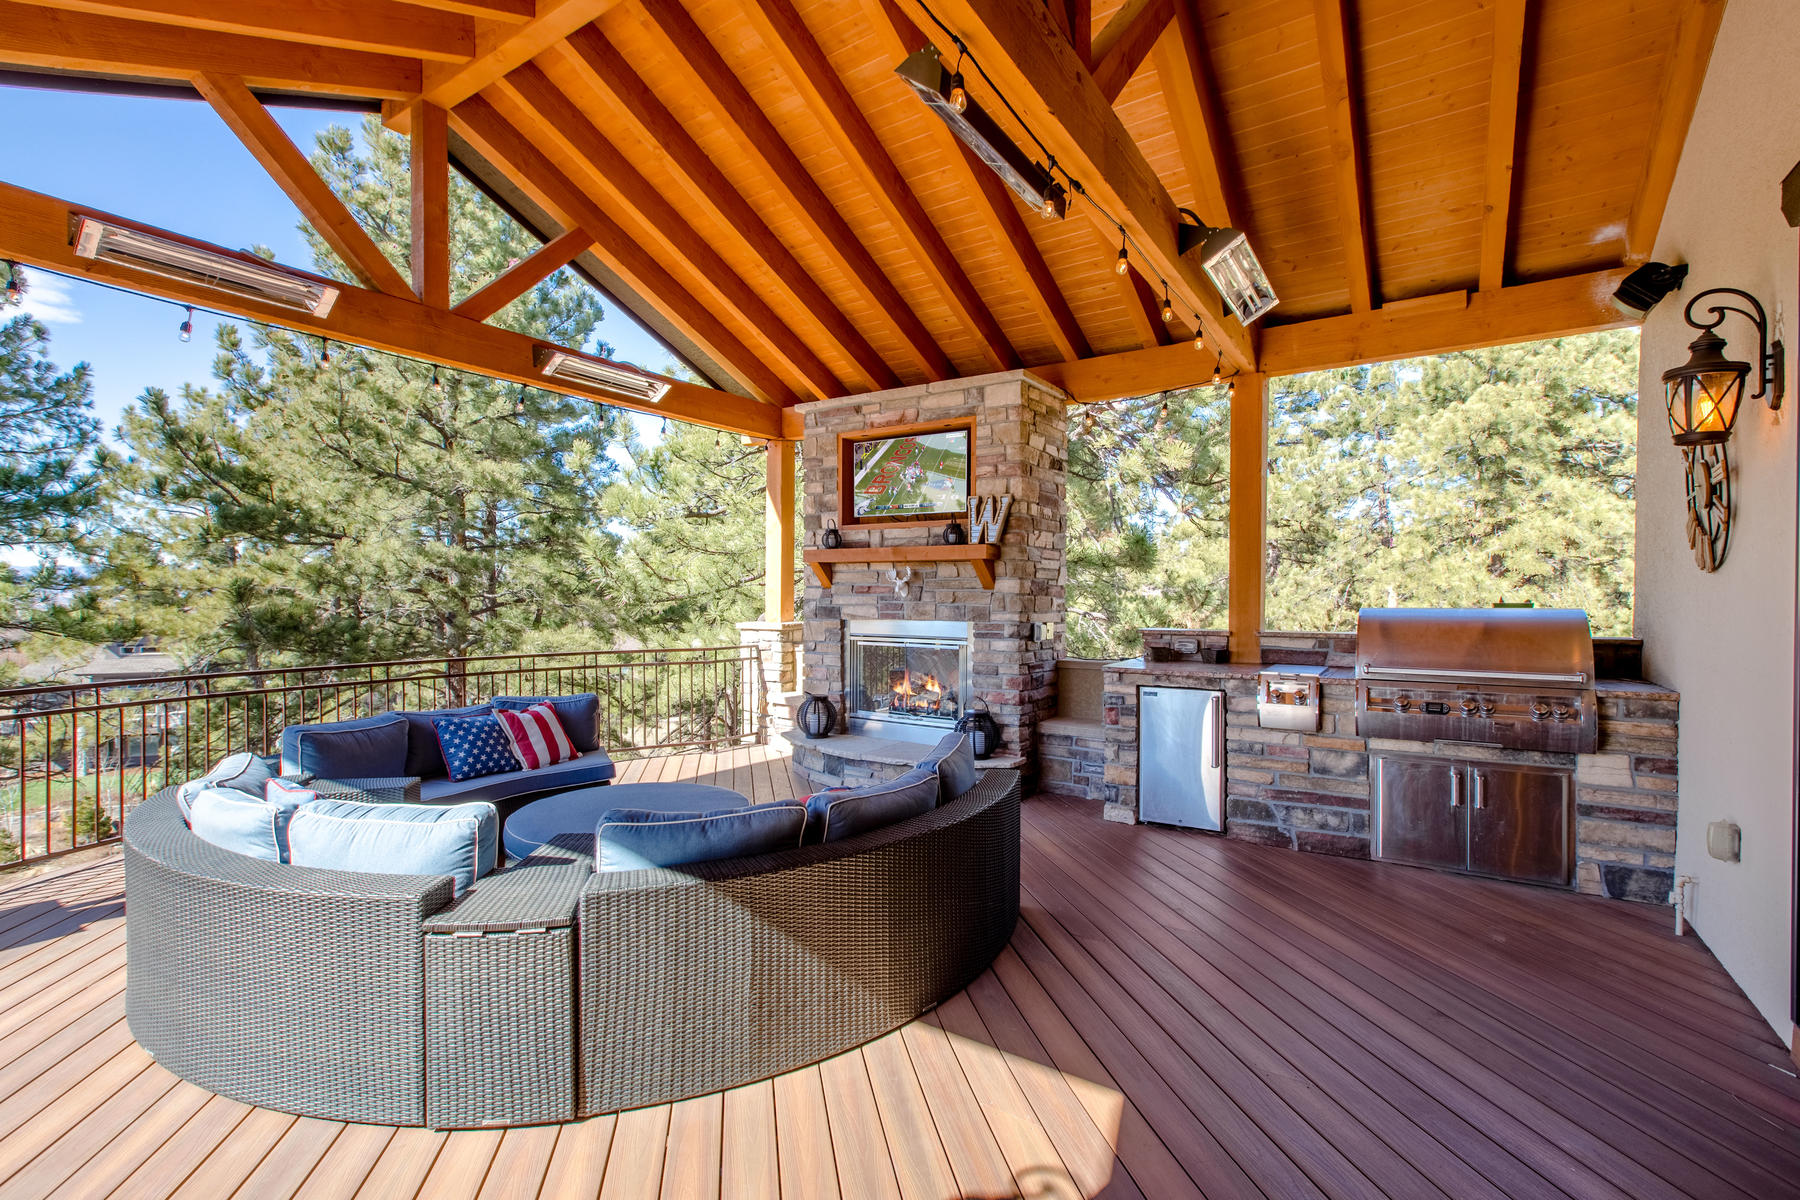 Single Family Home for Active at Colorado Contemporary Ranch homes sits in a Ponderosa Pine Forest on 3/4 acres. 2463 Saddleback Ct Castle Rock, Colorado 80104 United States